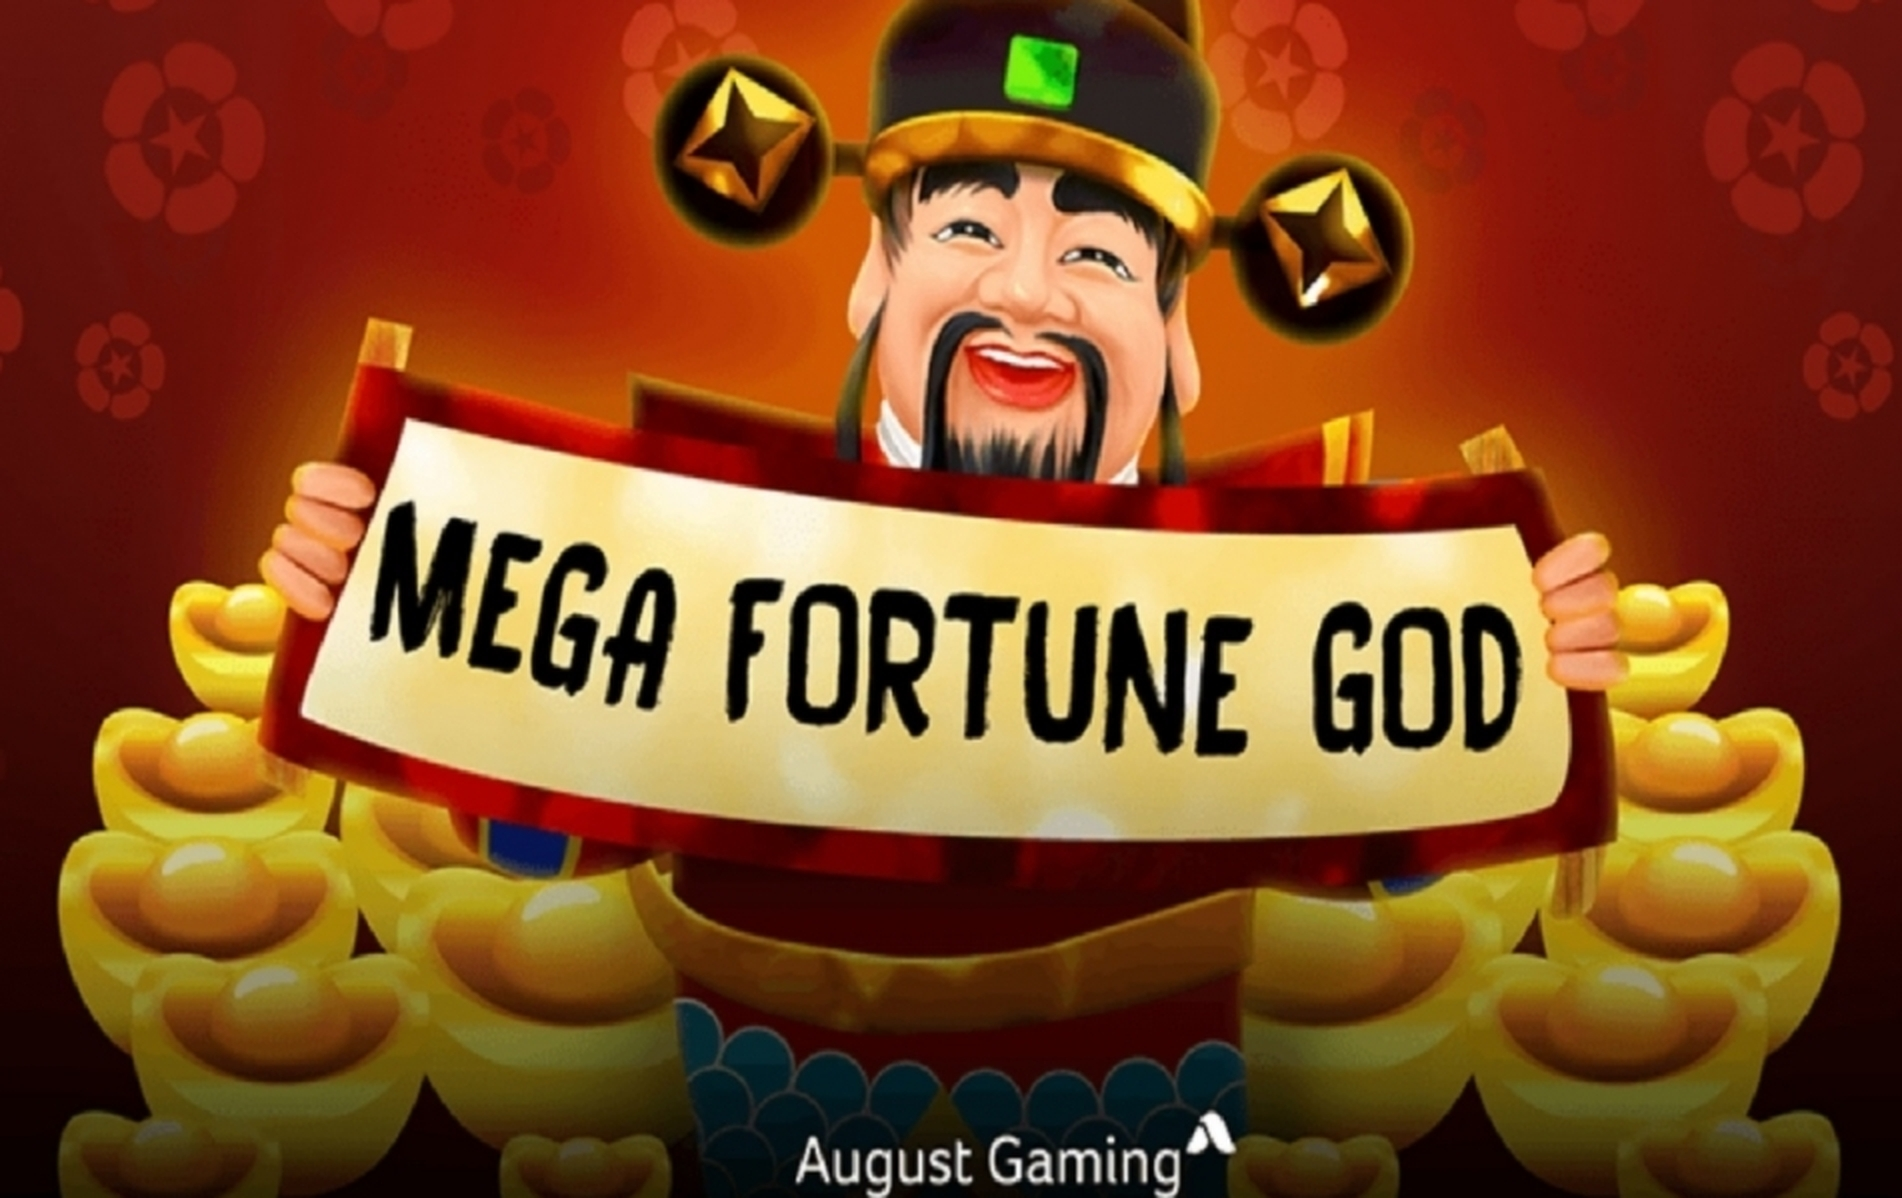 The Mega Fortune God Online Slot Demo Game by August Gaming